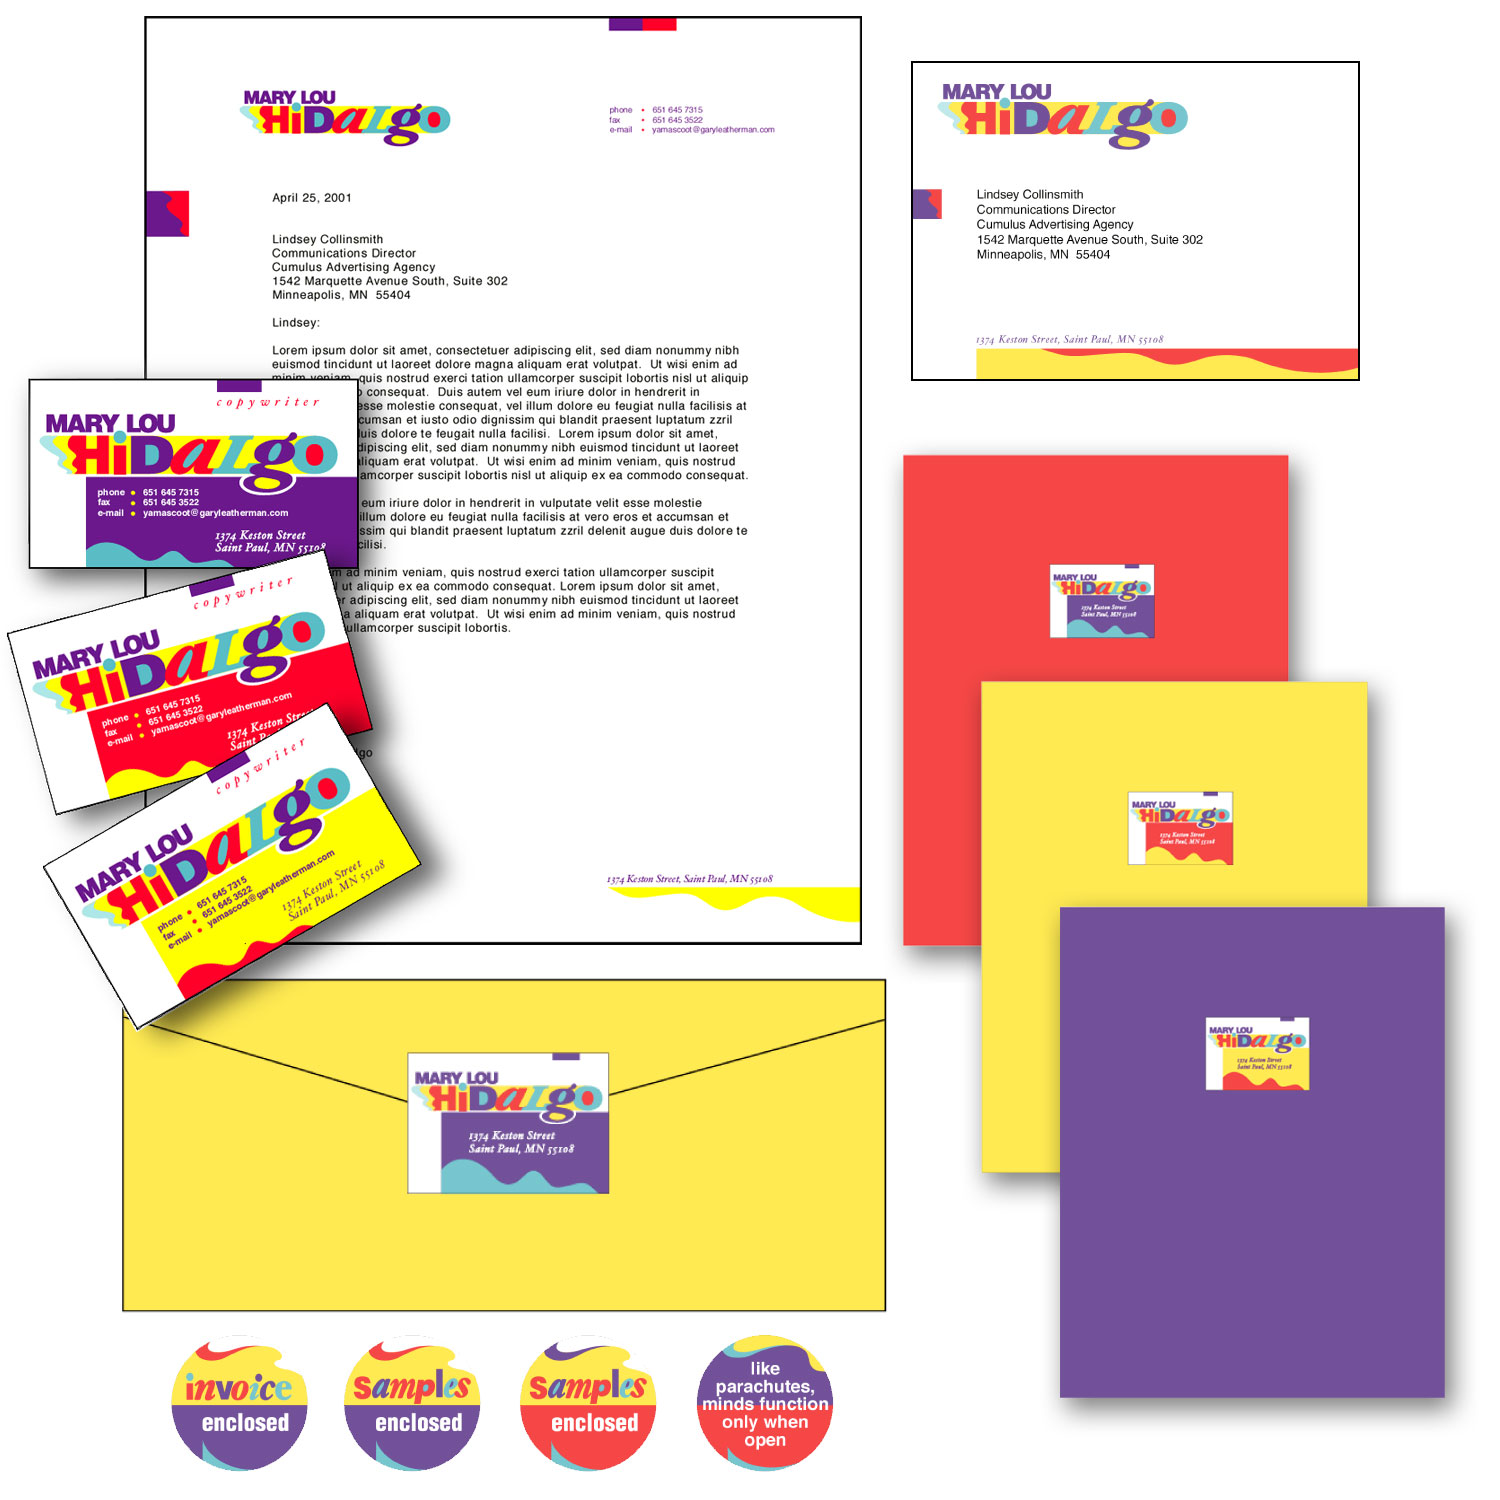 Identity System  Mary Lou Hildalgo     Mary Lou is a successful copywriter and content strategist. Her clients describe her as fun, fantabulous, creative, full of enthusiasm, a great thinker, and a true gem. I collaborated with Mary Lou to find a way to reflect her positive and colorful view of life in her identity materials. __________